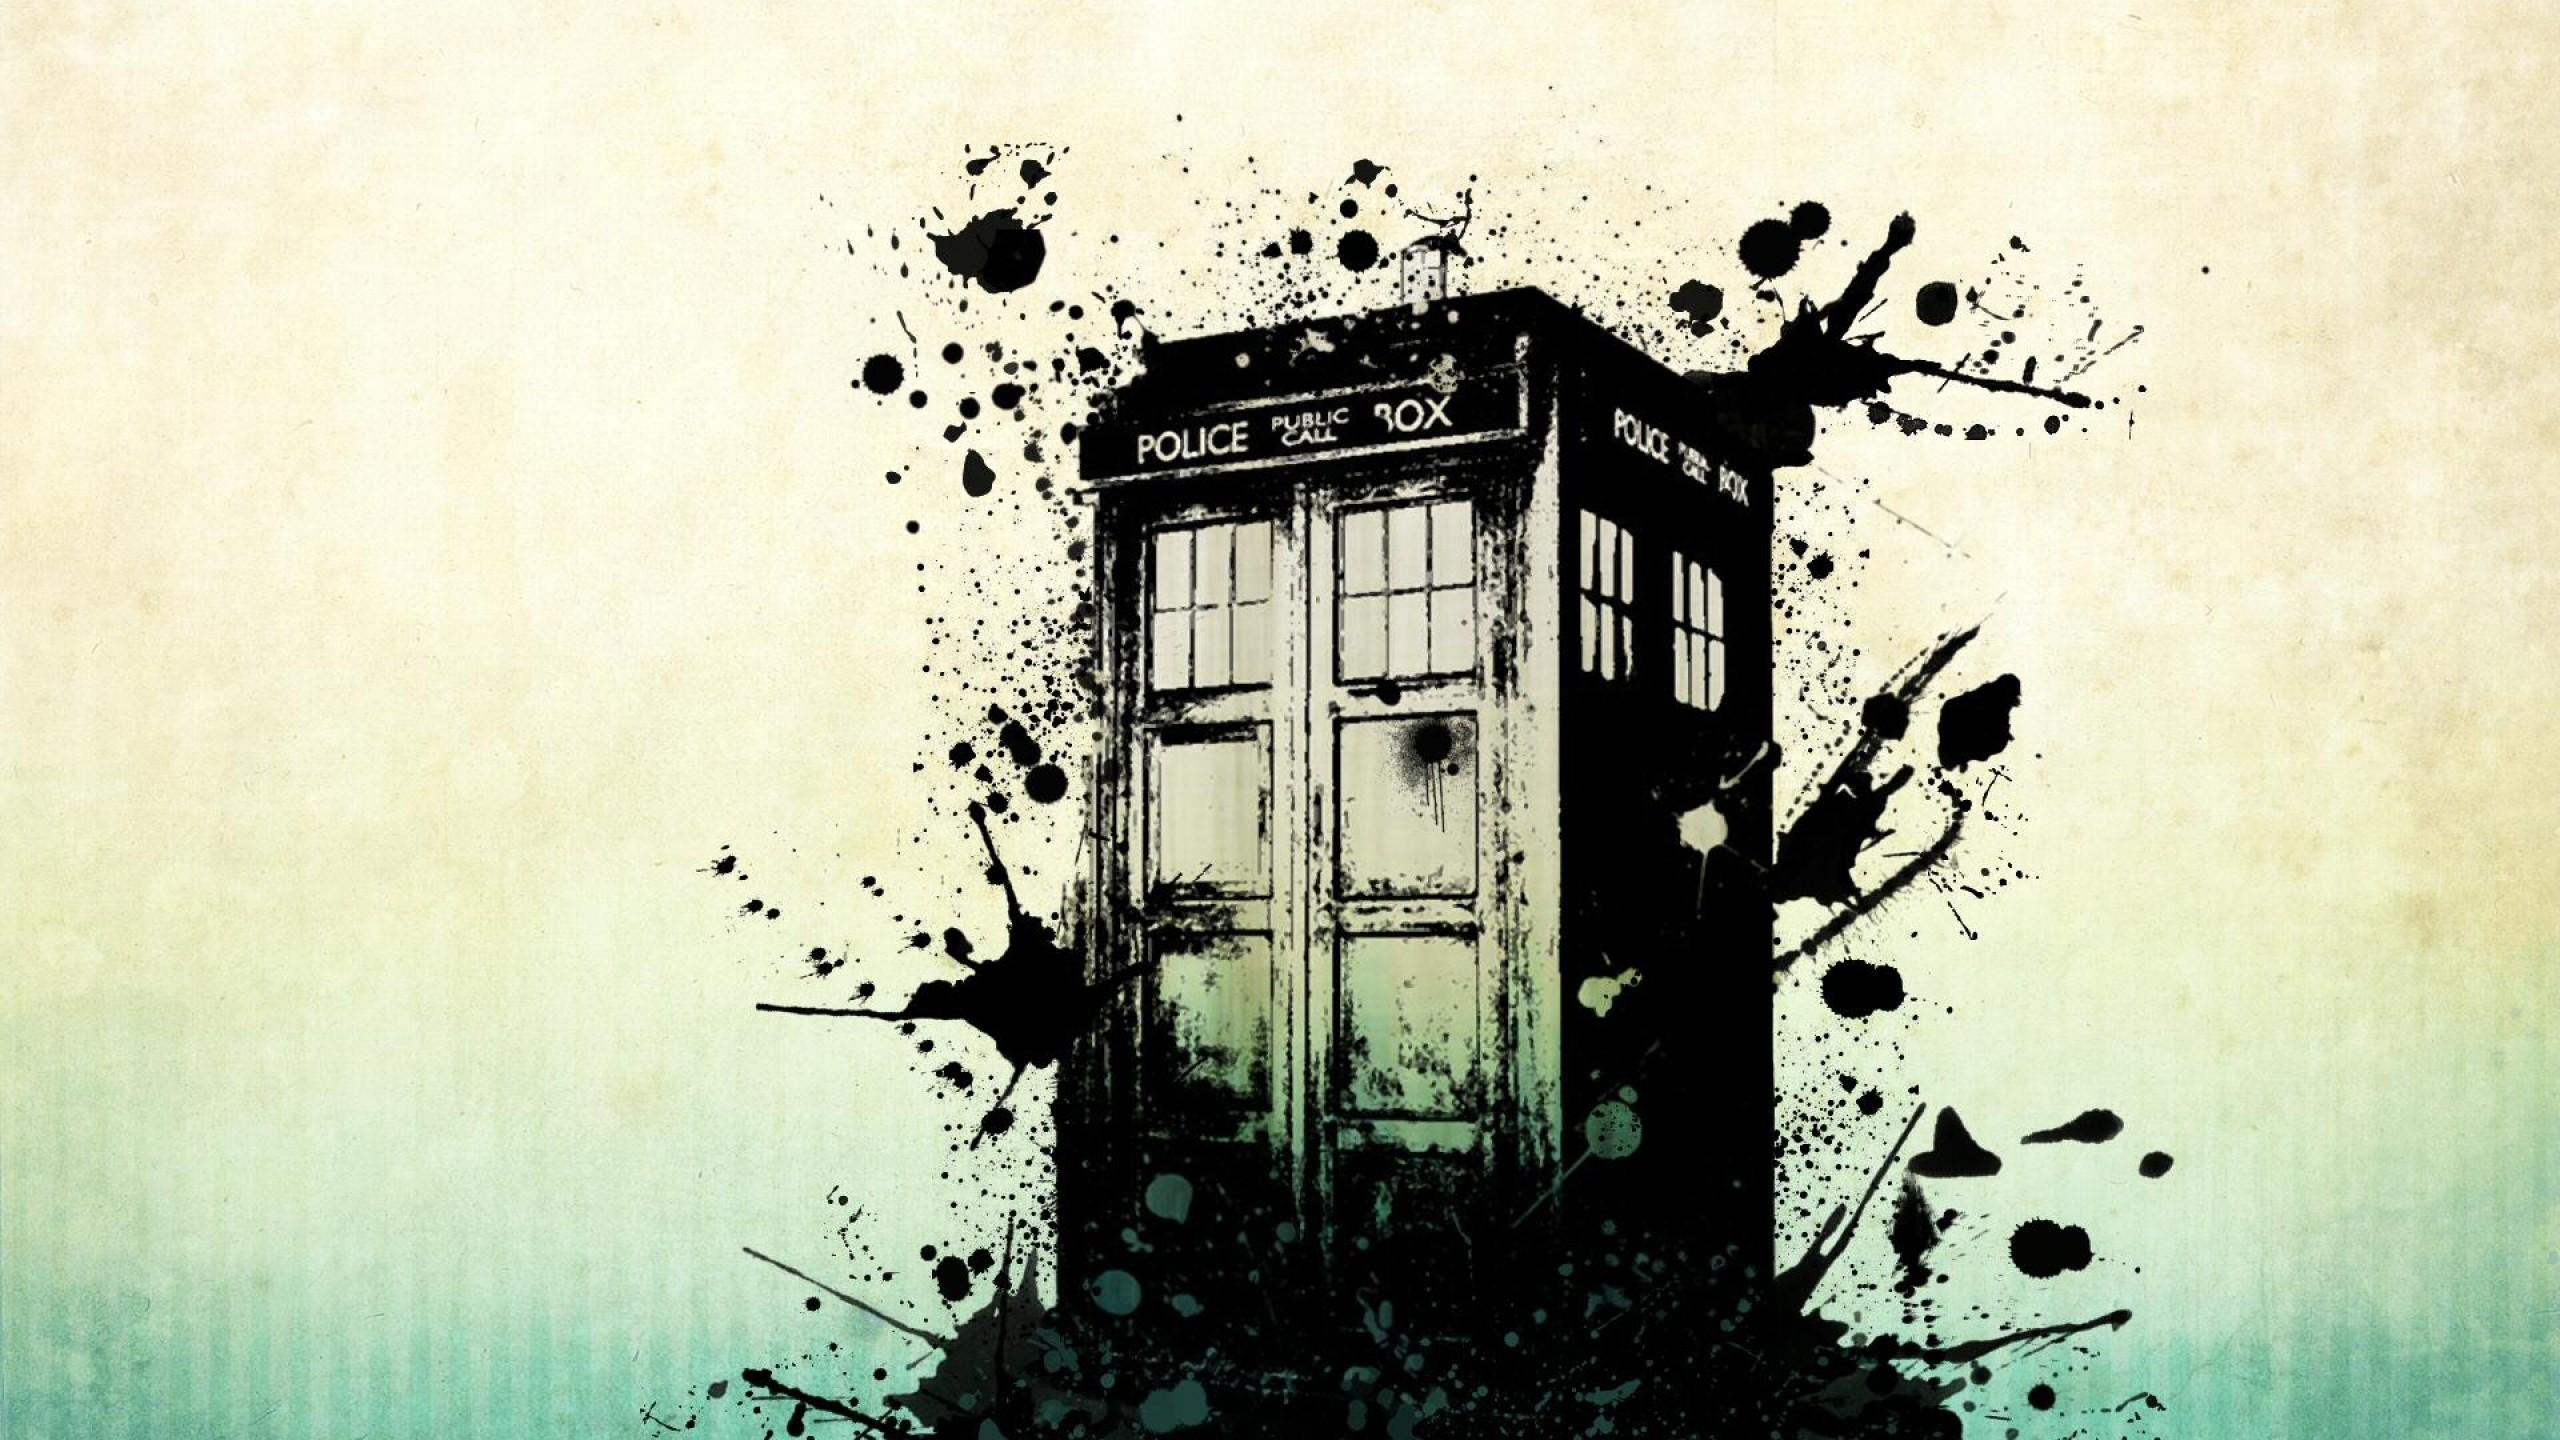 dr who desktop wallpapers group (83+)